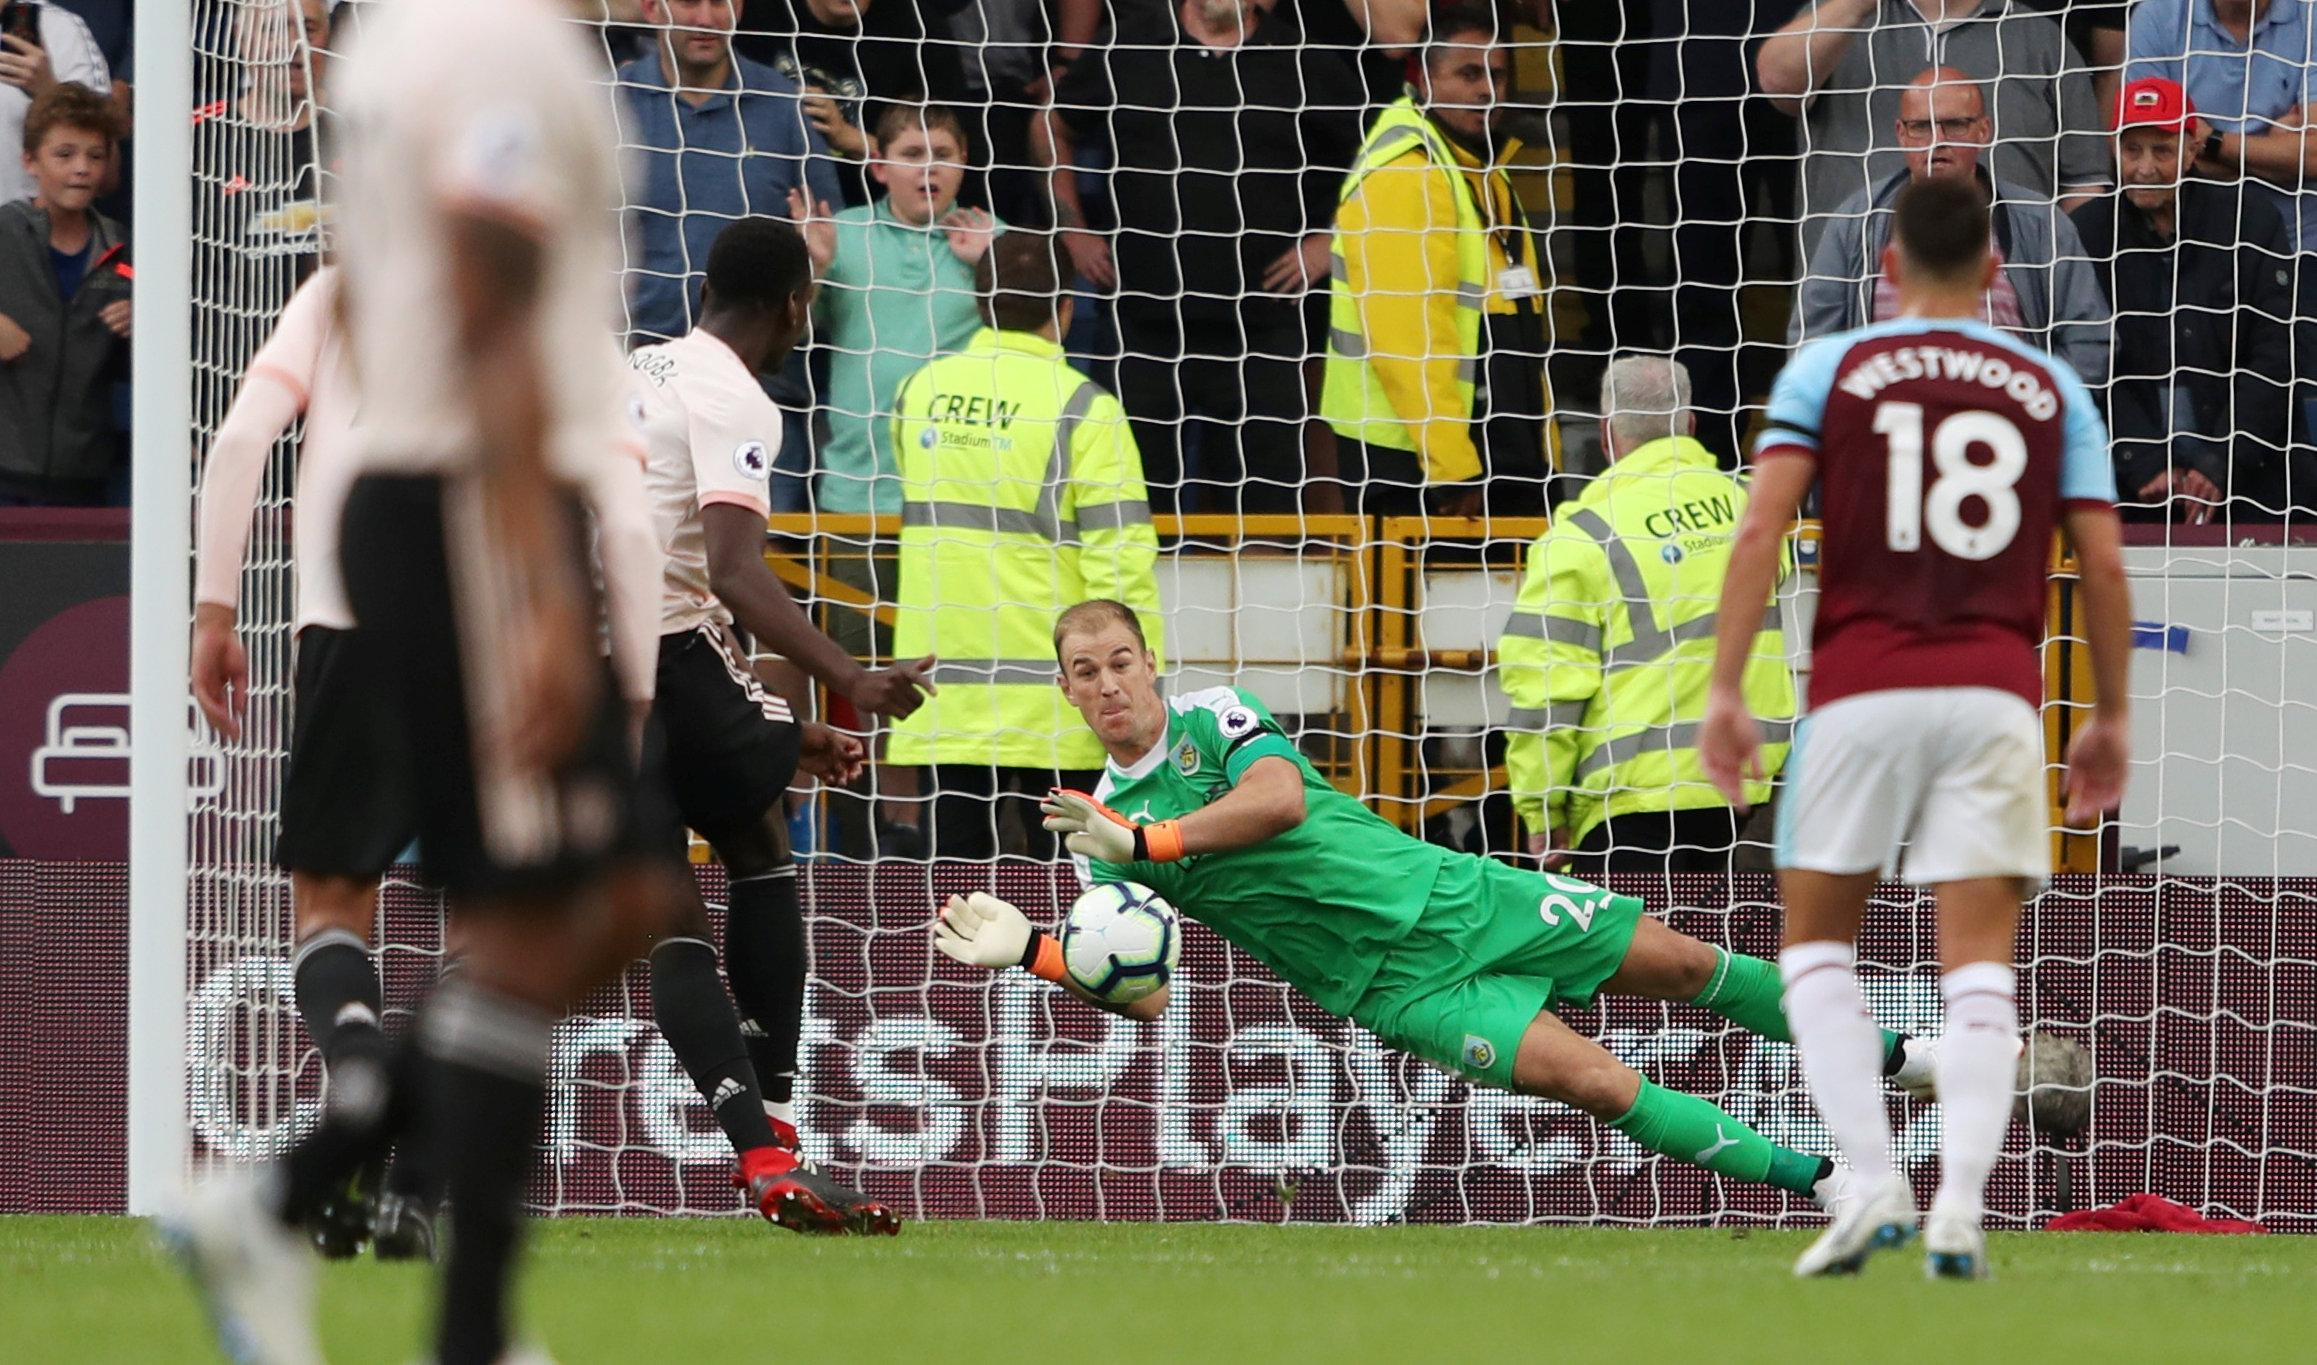 Joe Hart saved a second half penalty from Paul Pogba